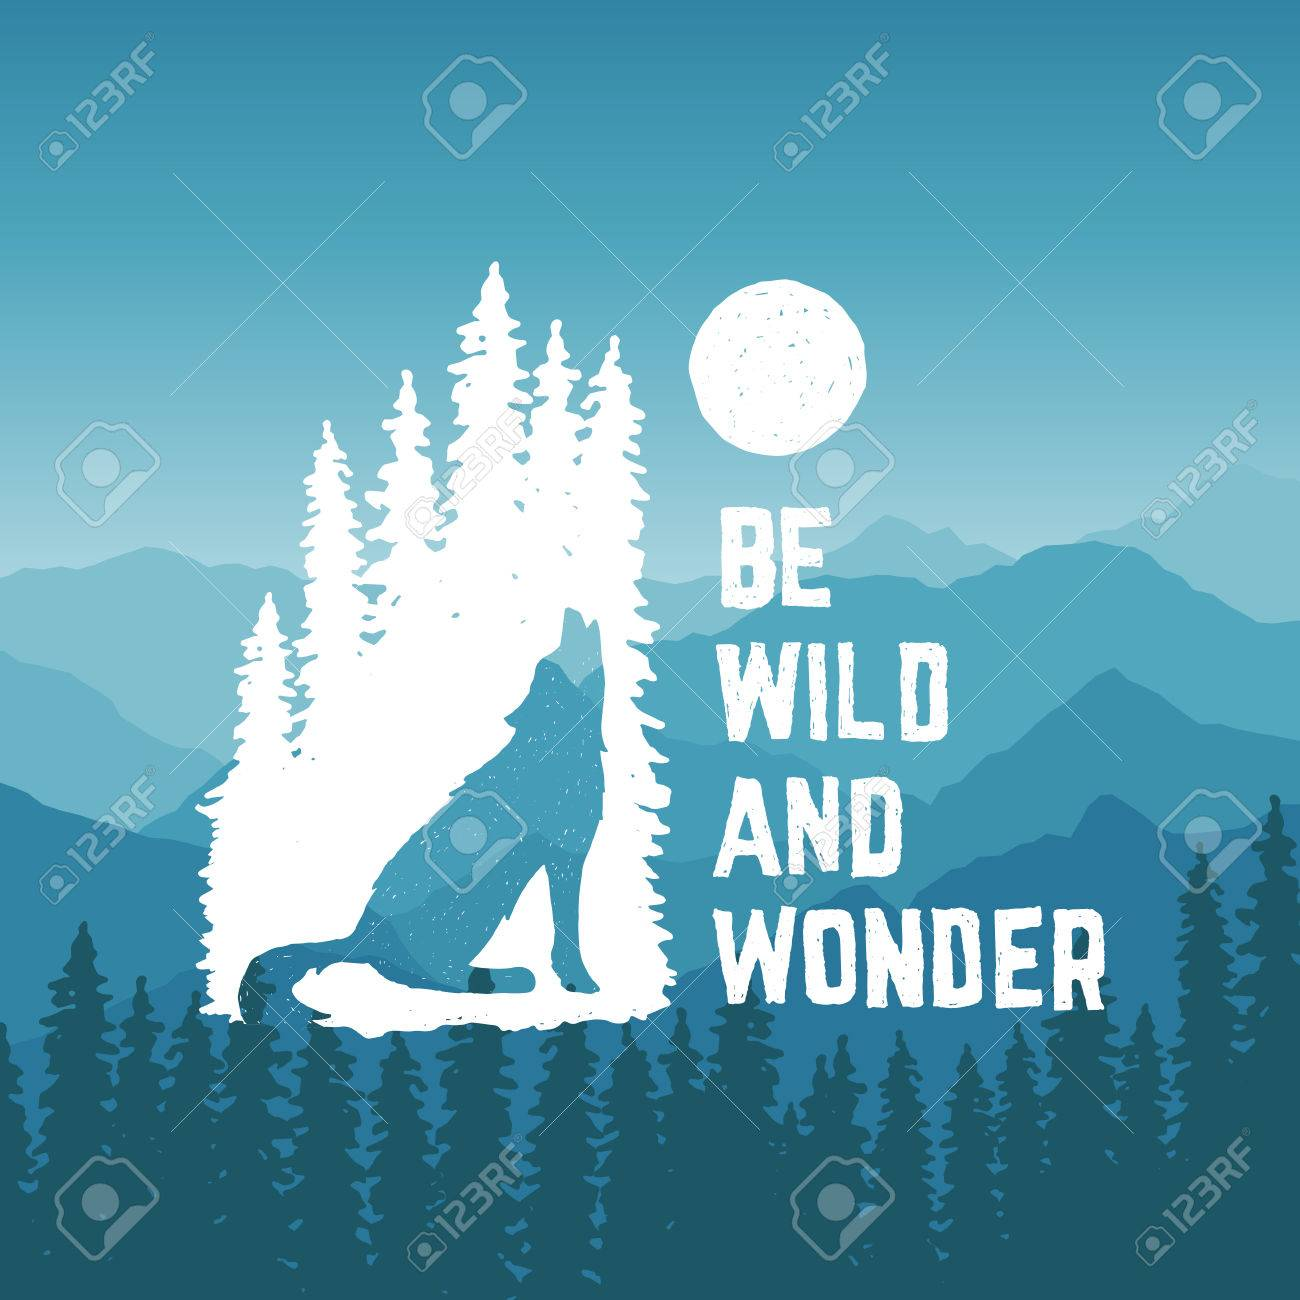 hand drawn typography poster with howling wolf, pine trees and moon. be wild and wonder. artwork for hipster wear. vector Inspirational illustration on mountain background - 42858020